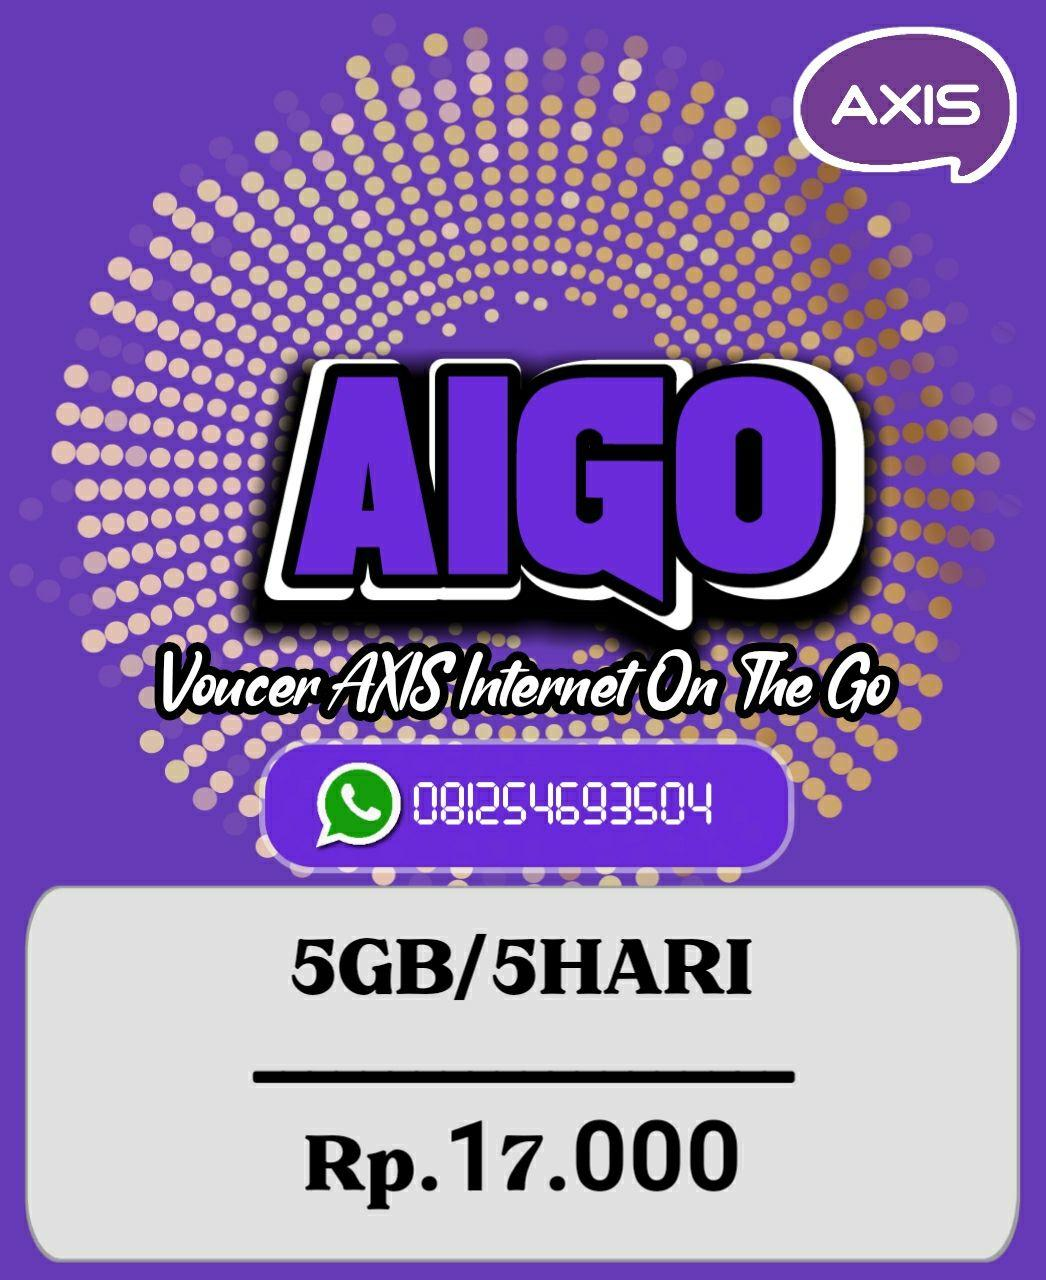 Voucer Axis 5GB/5Hari